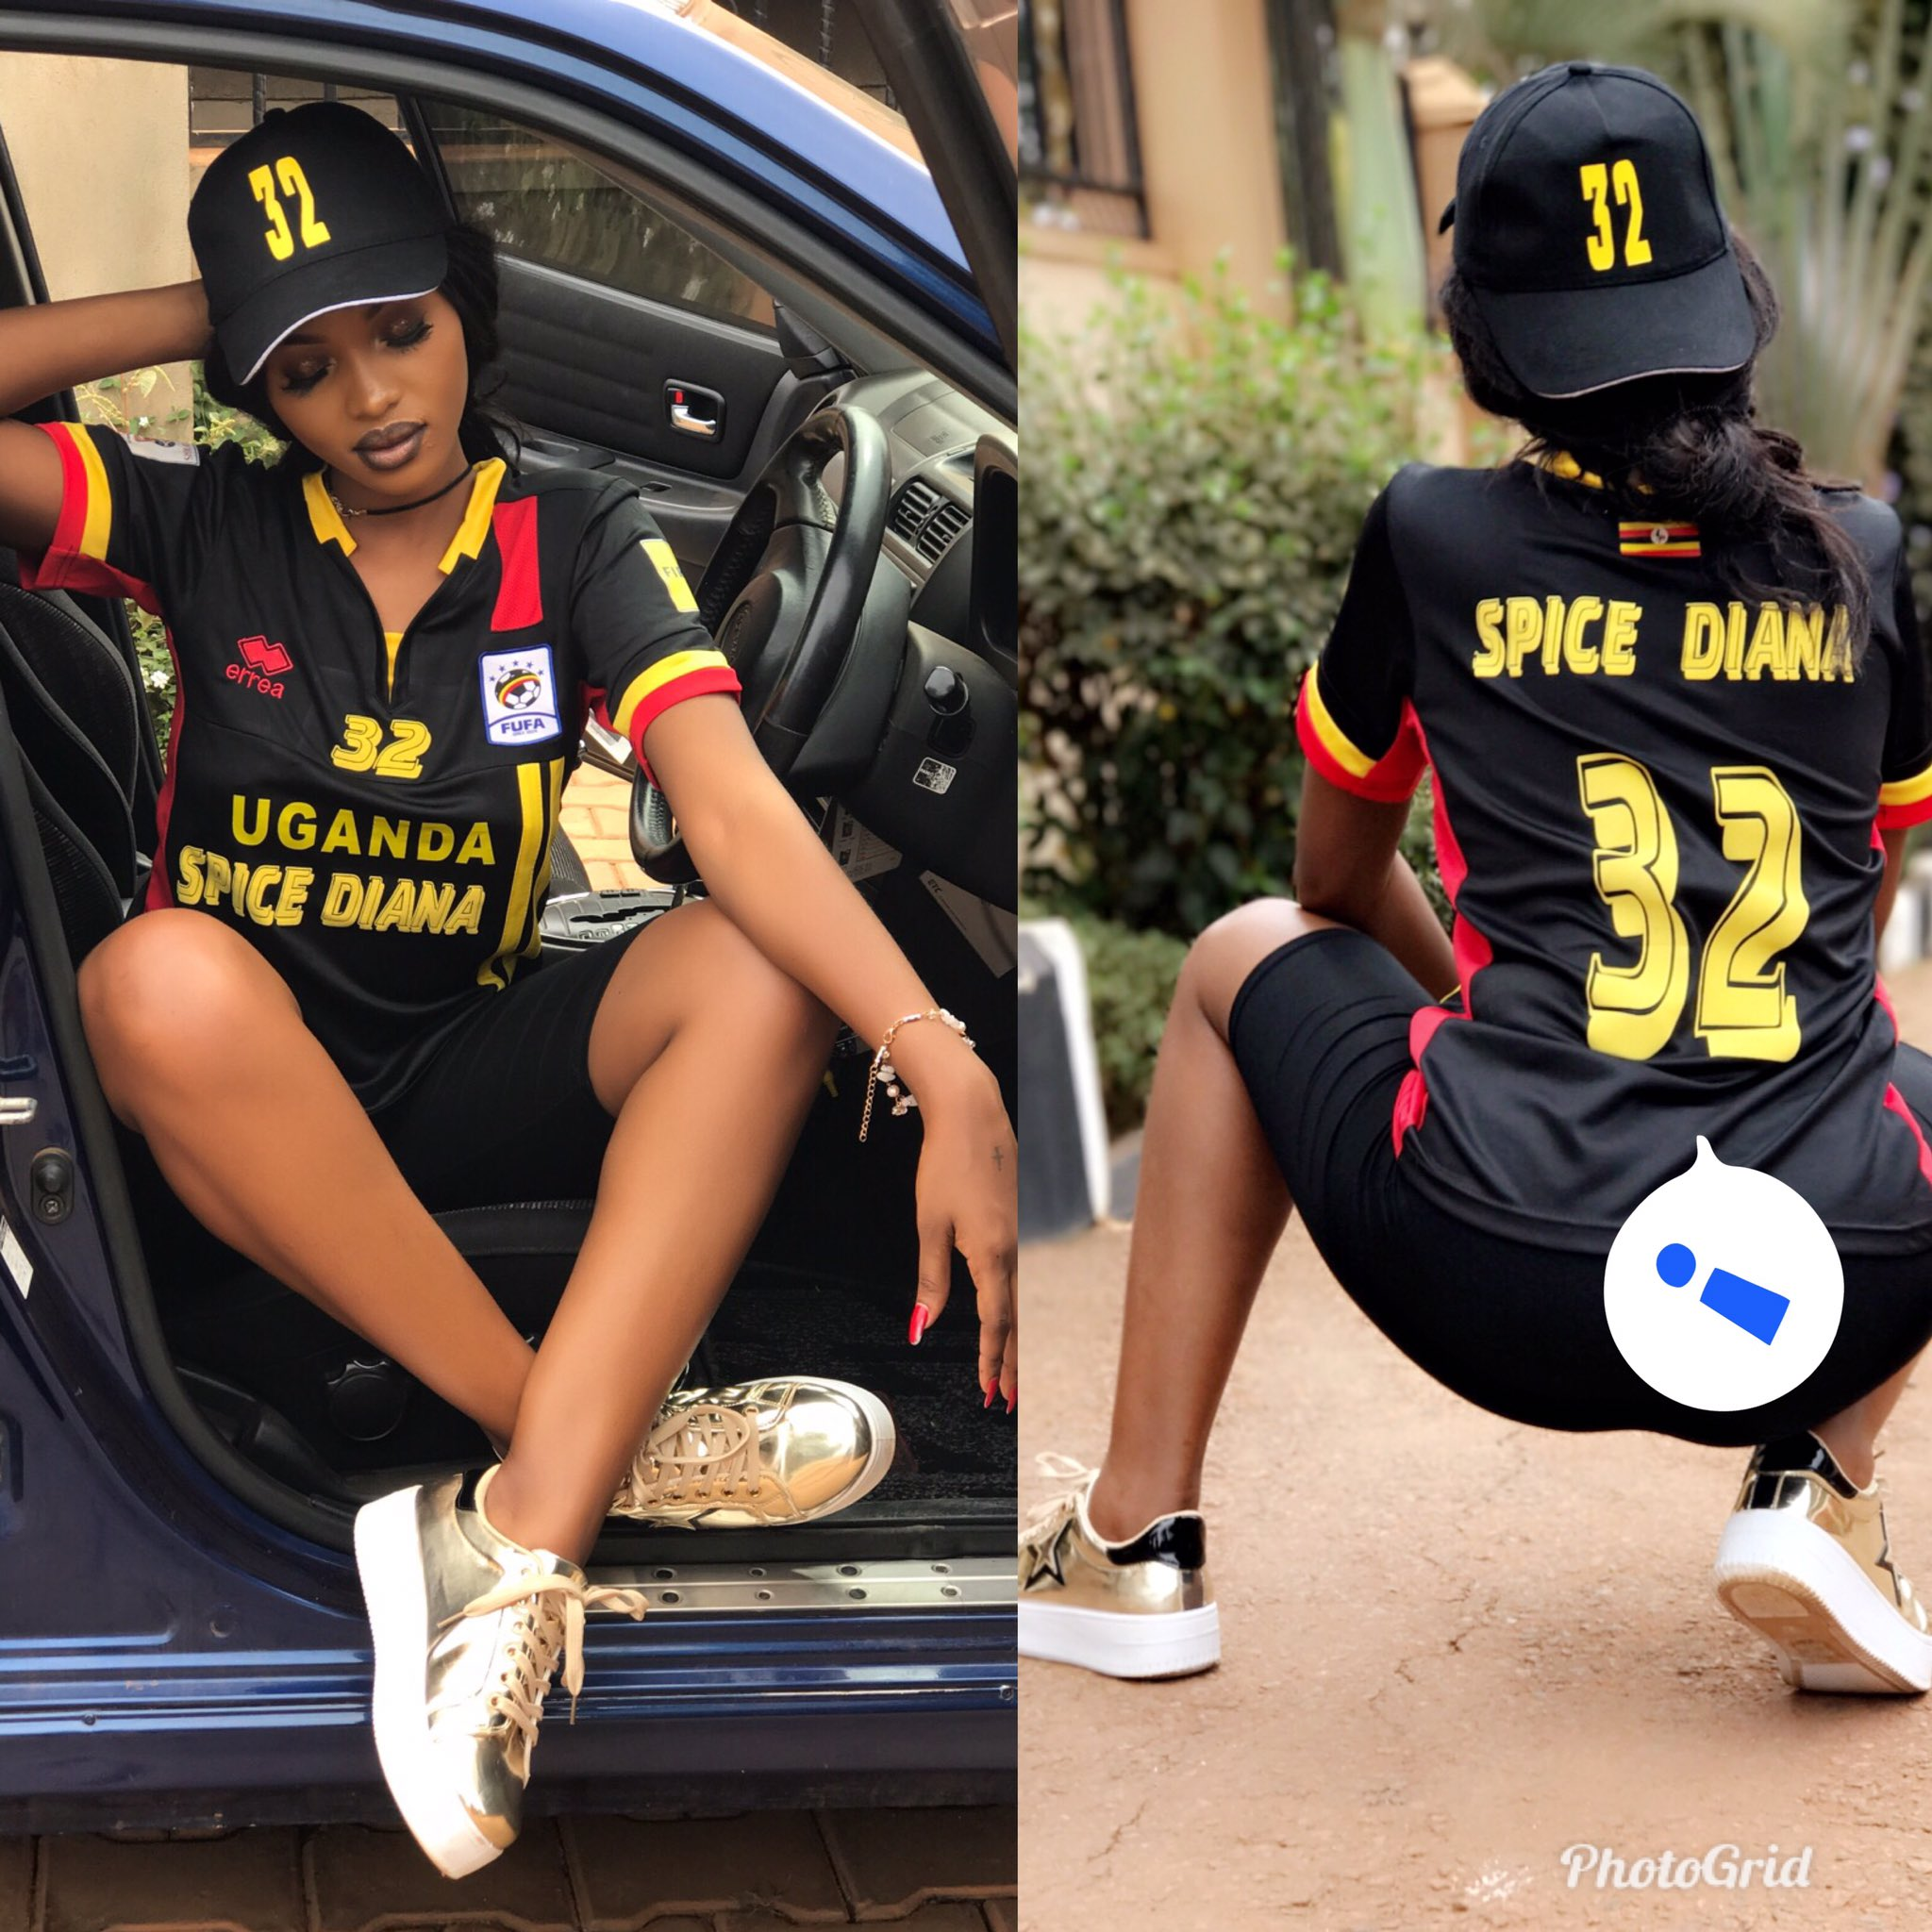 Spice Diana Releases two hit videos